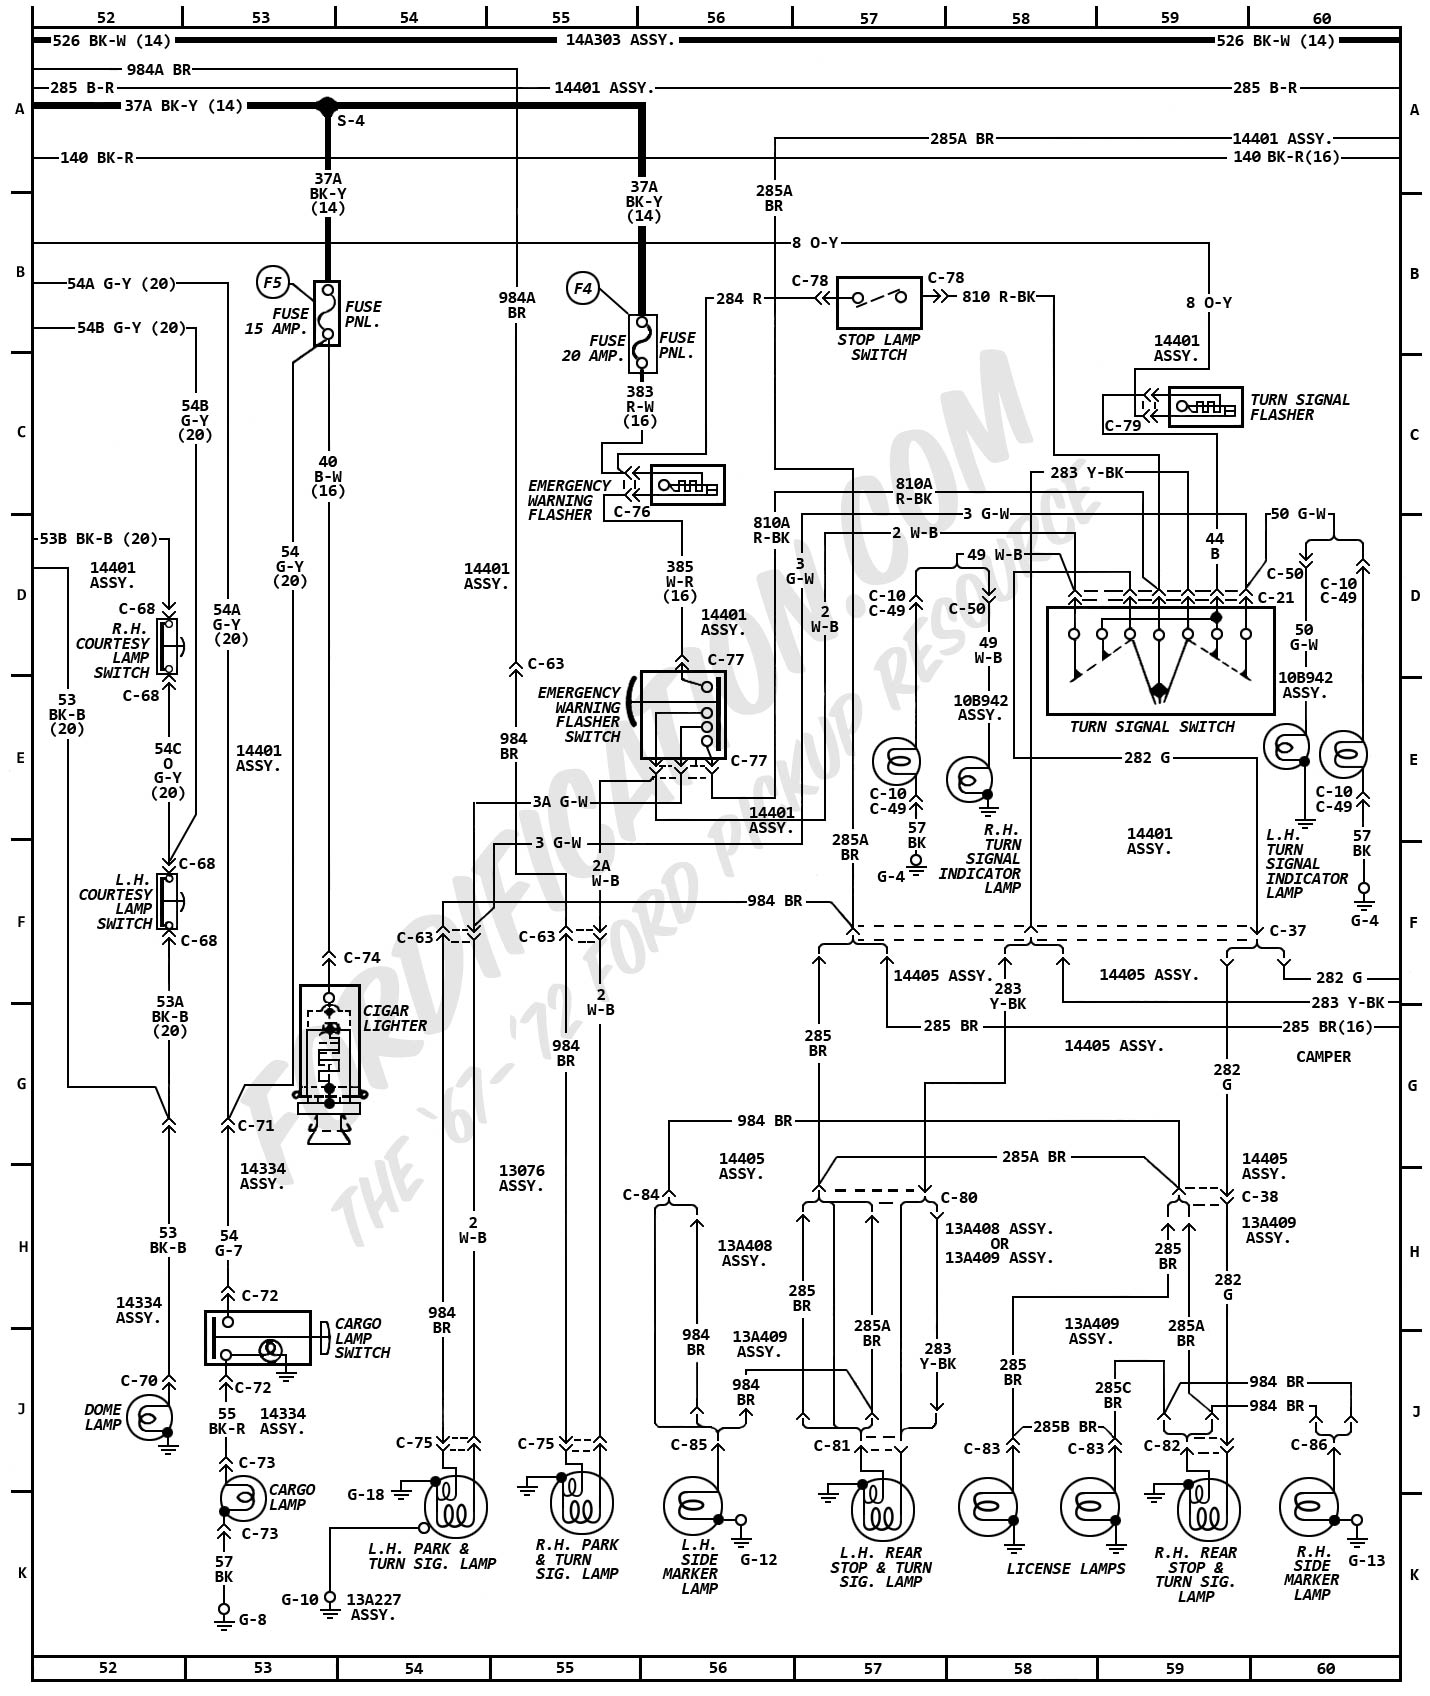 1971 Vw Beetle Ignition Switch Wiring Diagram Turn Signal